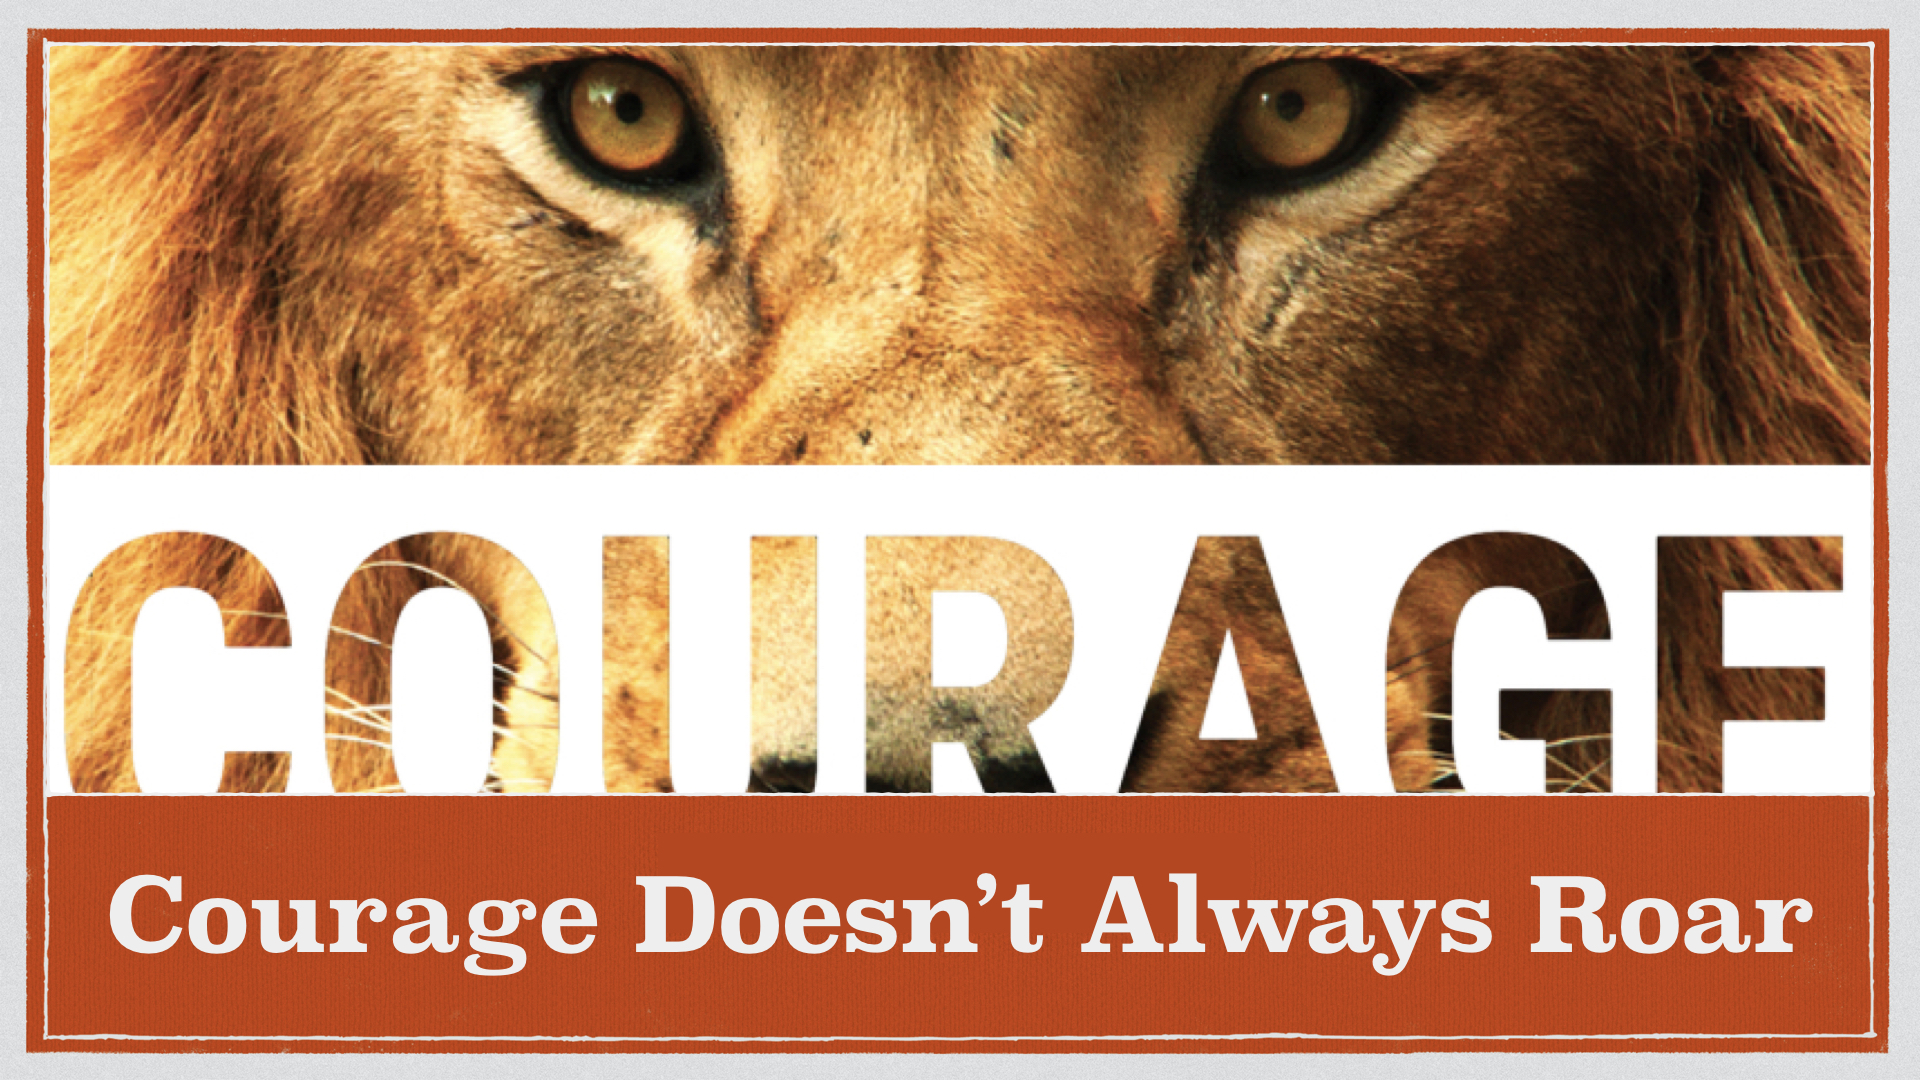 Courage Doesn't Always Roar by Lance Steeves